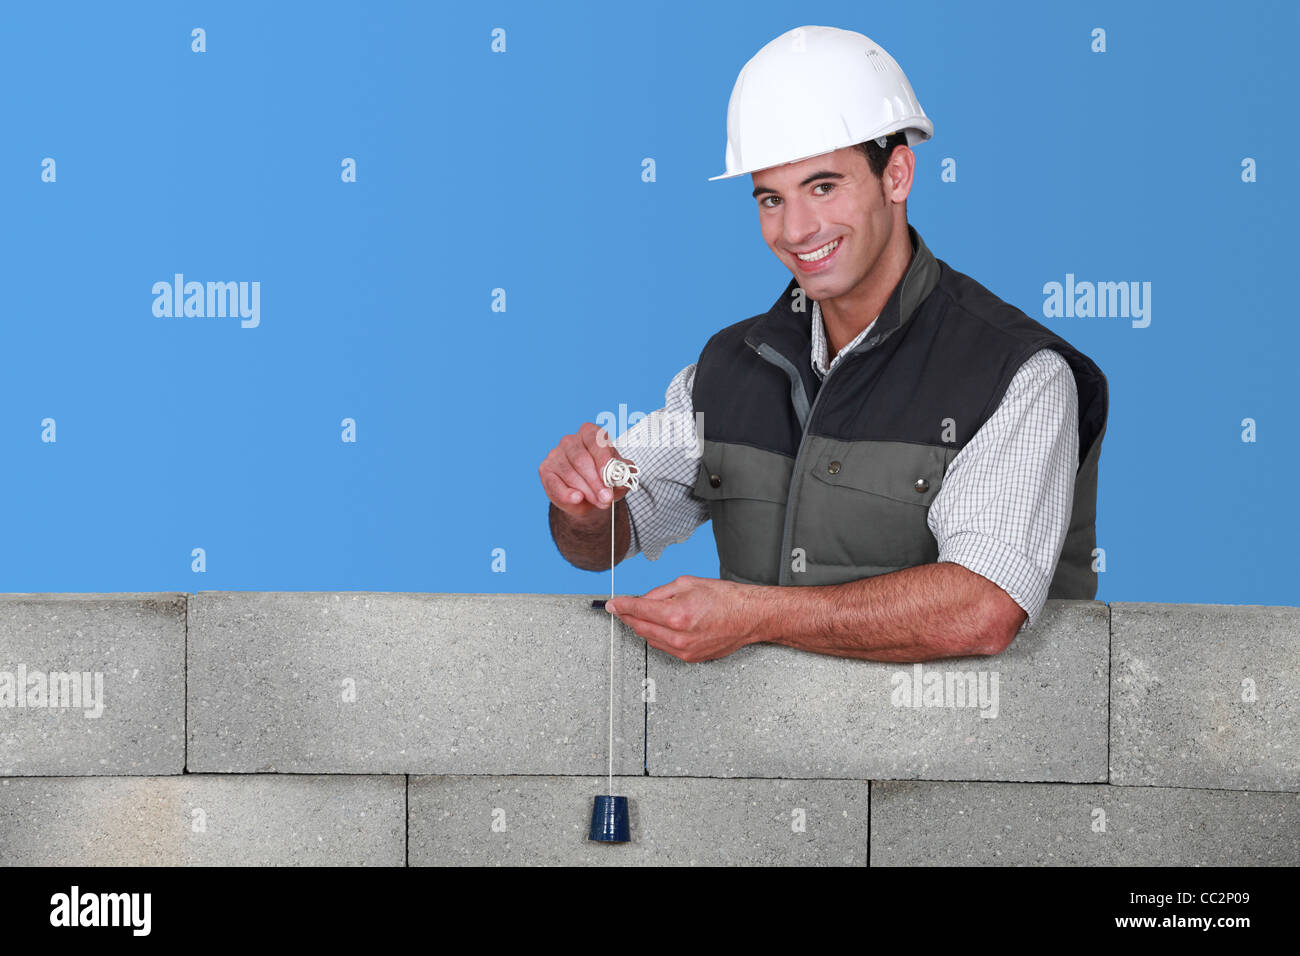 craftsman taking measurements - Stock Image